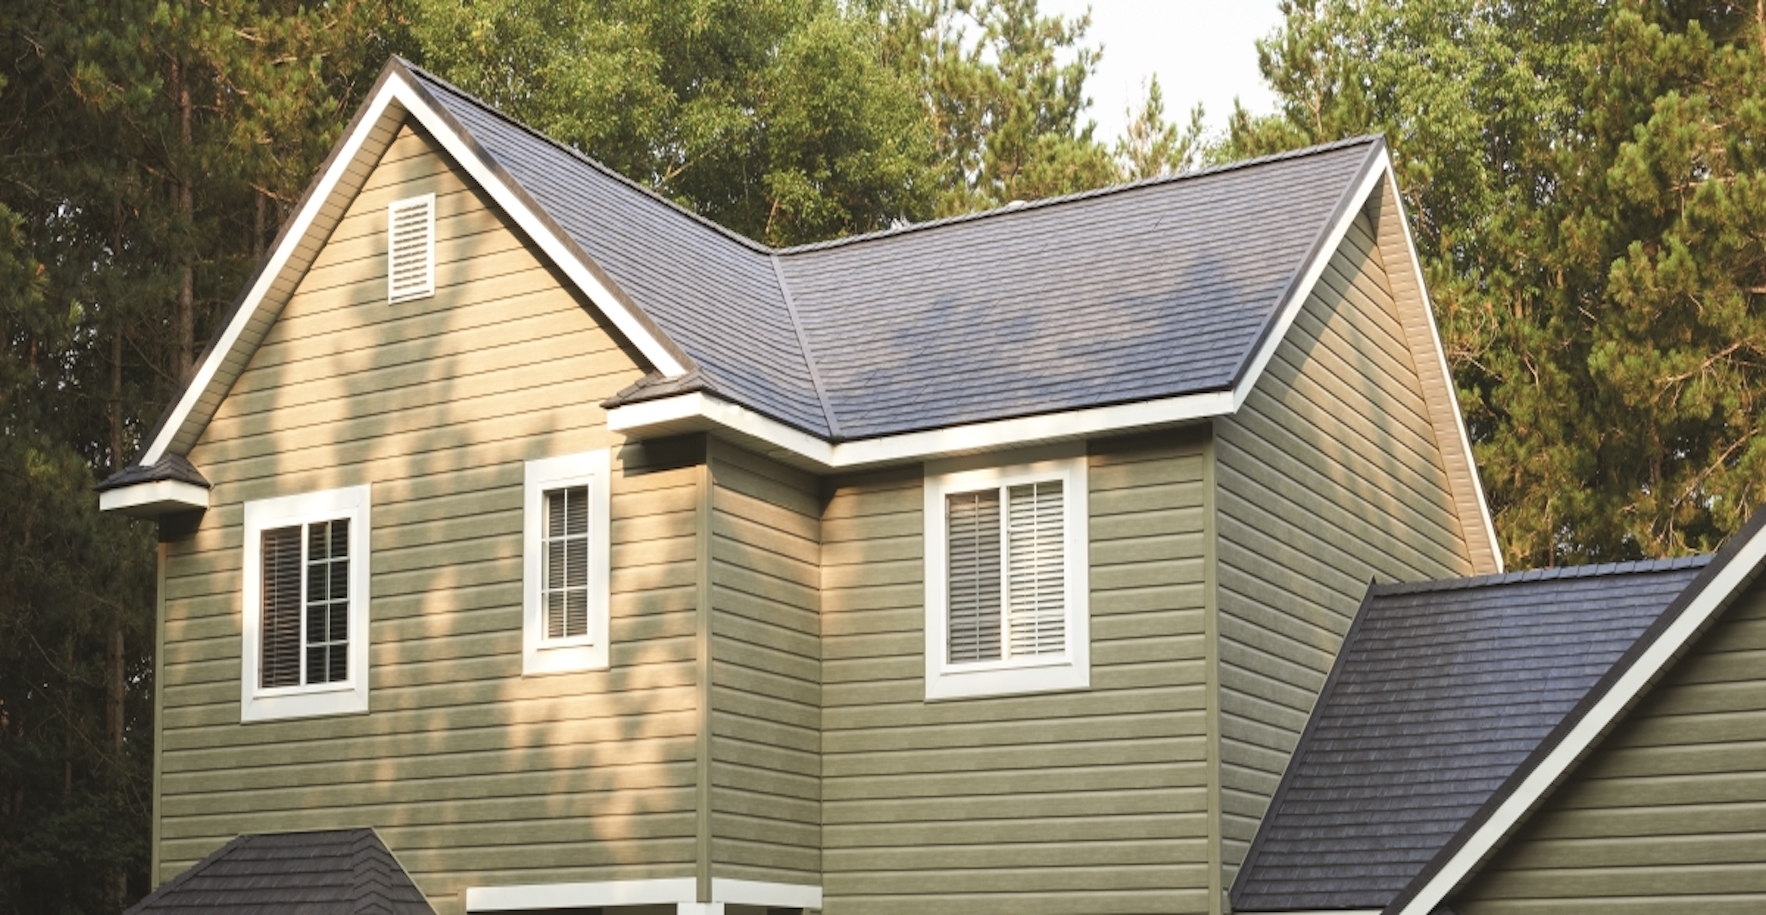 A-House-With-Blue-Shingles-Roofing